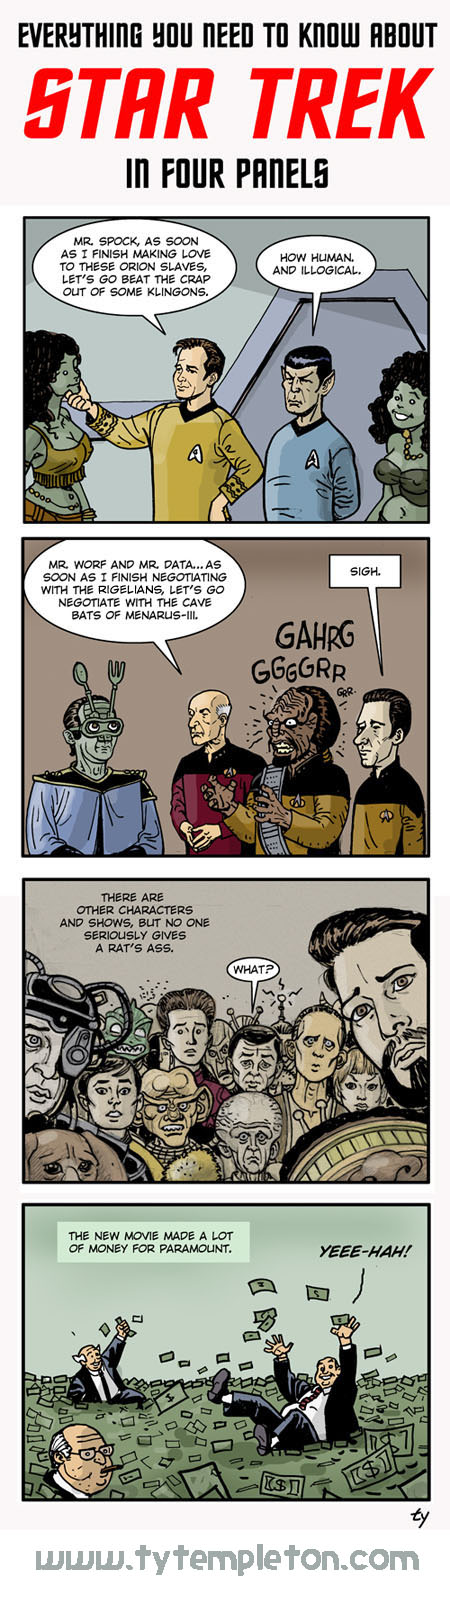 trek in four panels